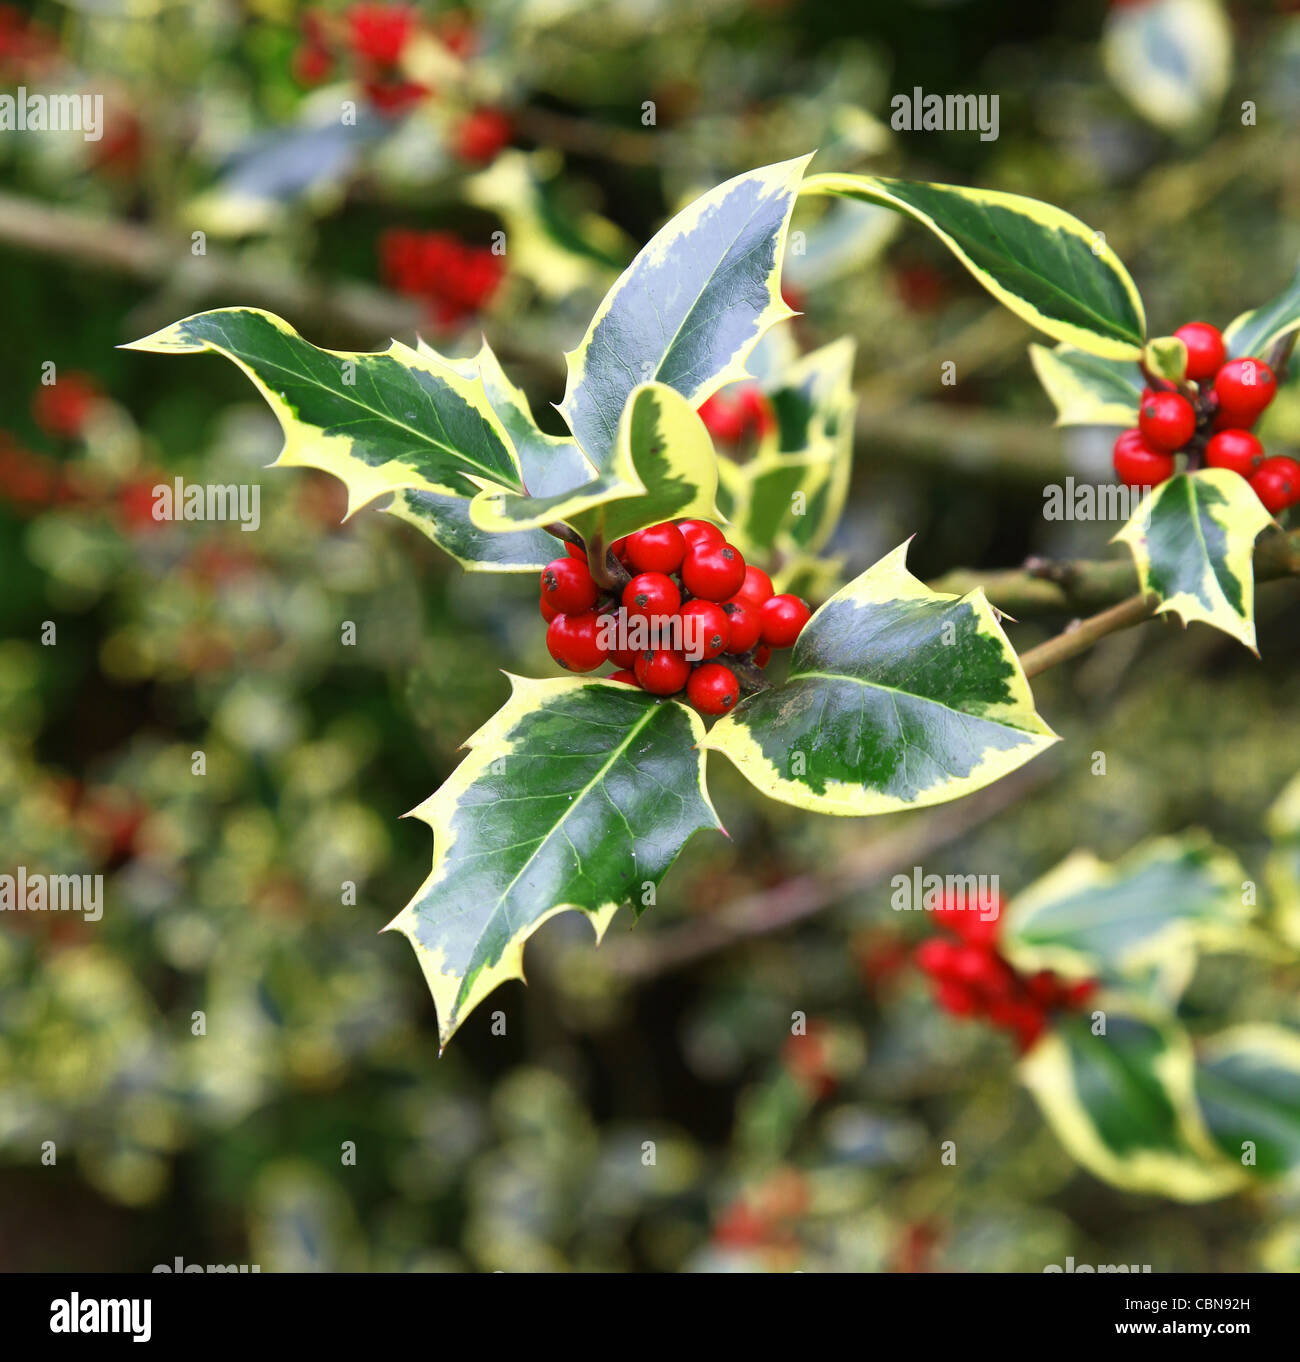 Red berries and yellow and green leaves of a variegated Common Holly, Ilex aquifolium 'Madame Briot' - Stock Image